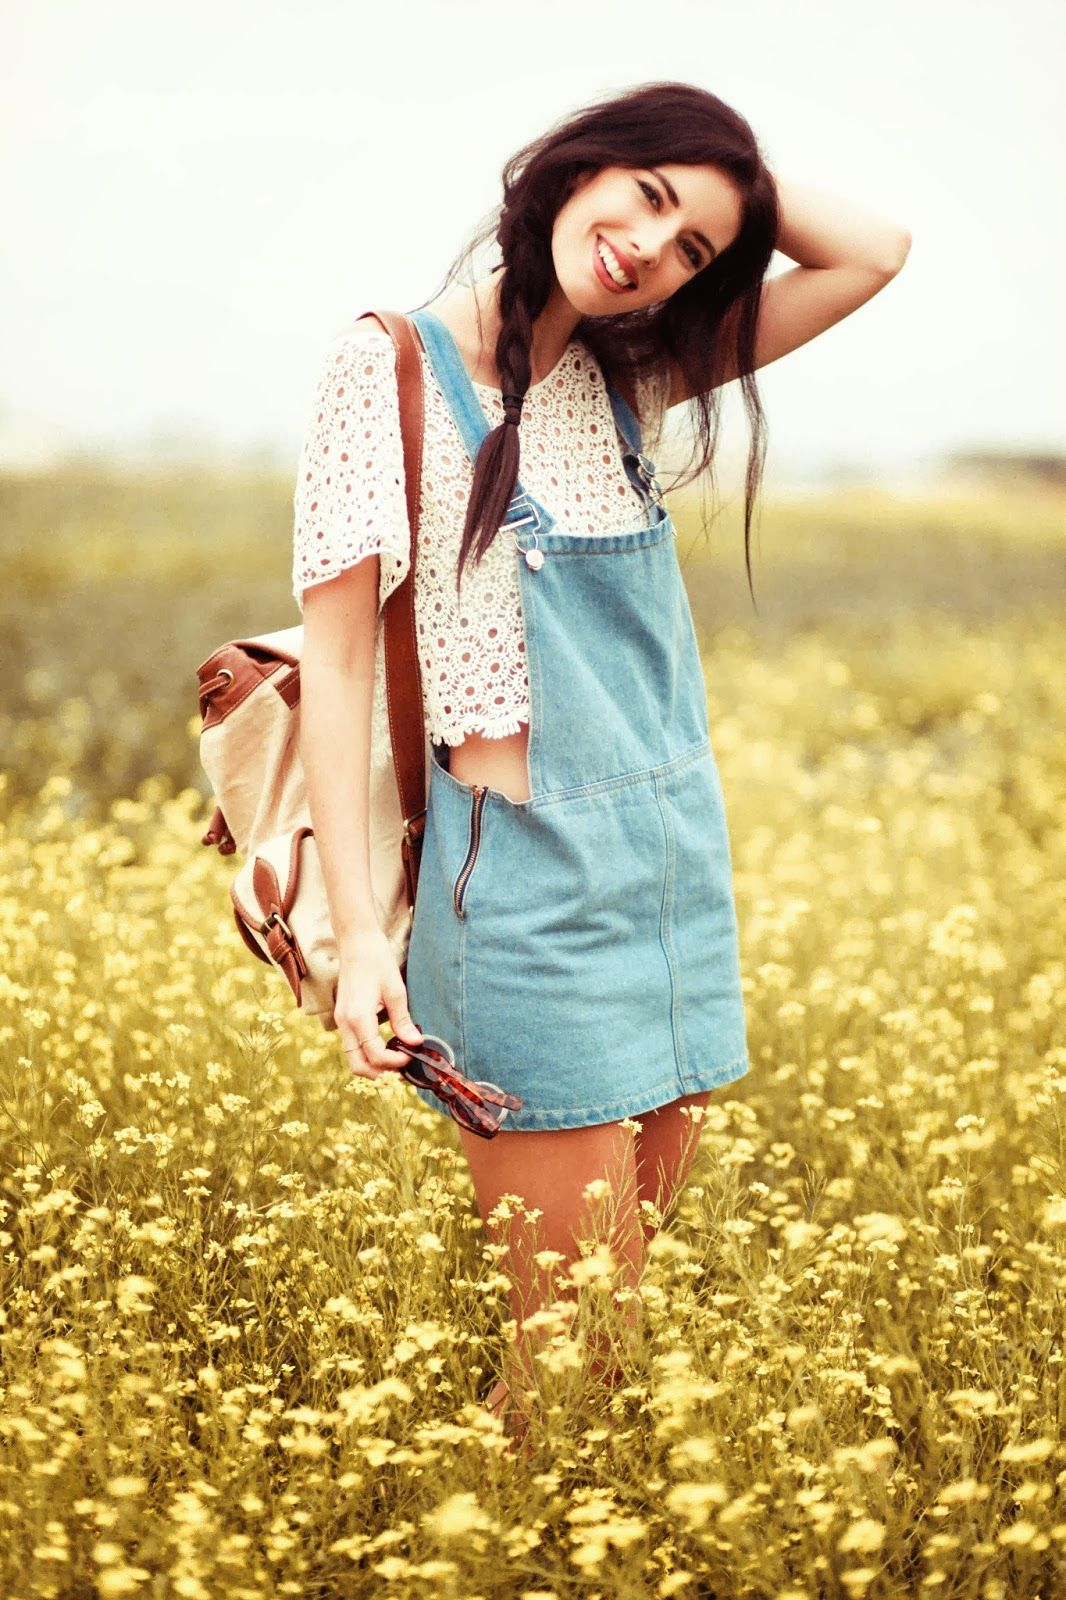 This is really cute I think I might try a look like this in the summer! :)